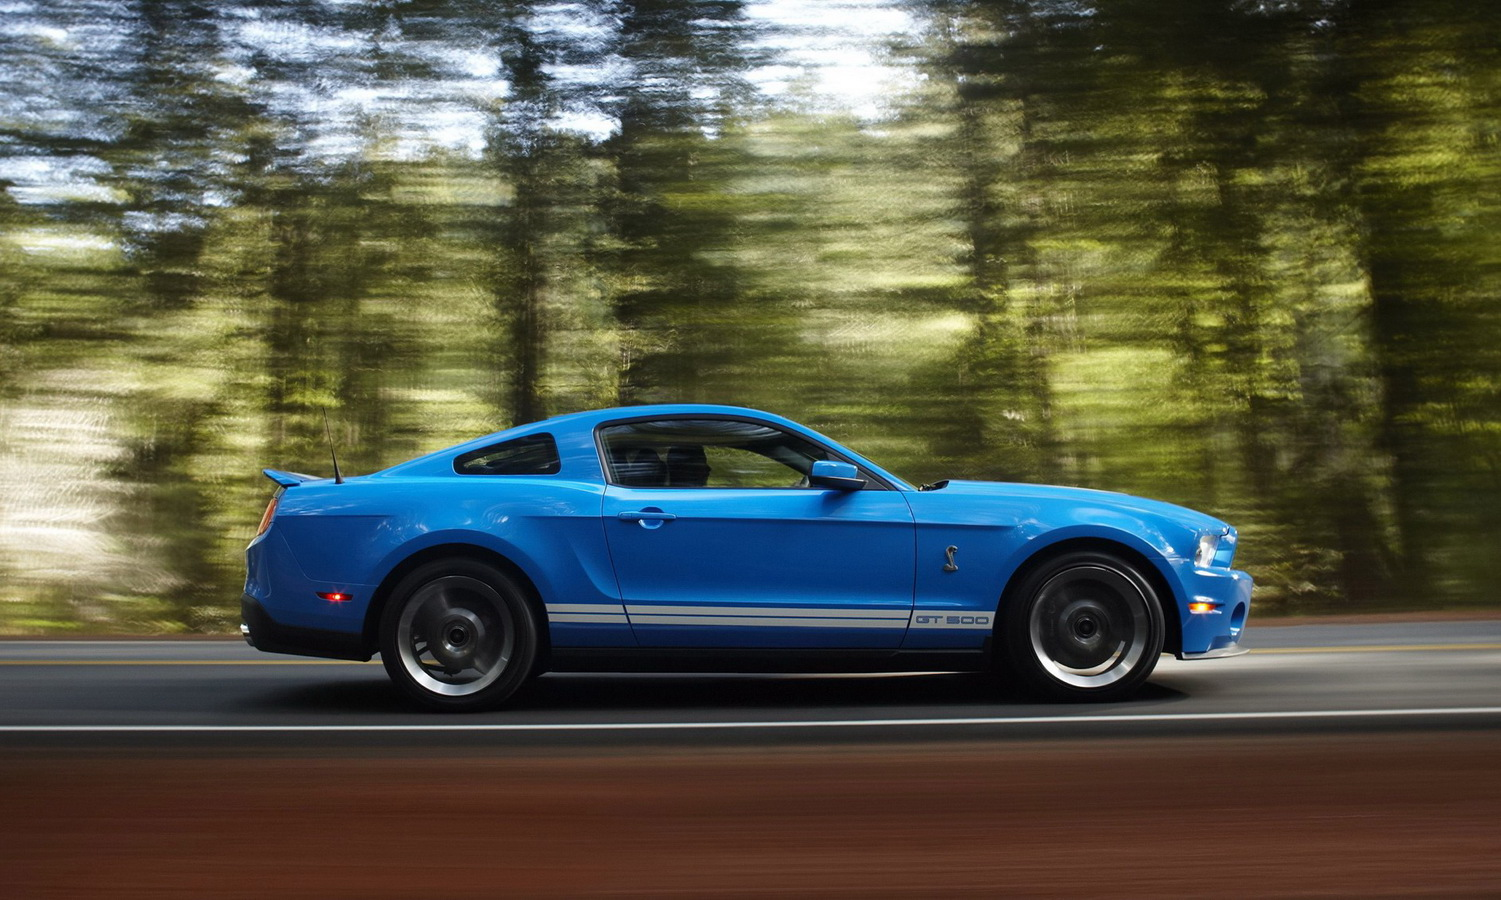 All Types 2010 mustang shelby : New 2010 Ford Shelby GT500 Coupe and Convertible Revealed (photo ...